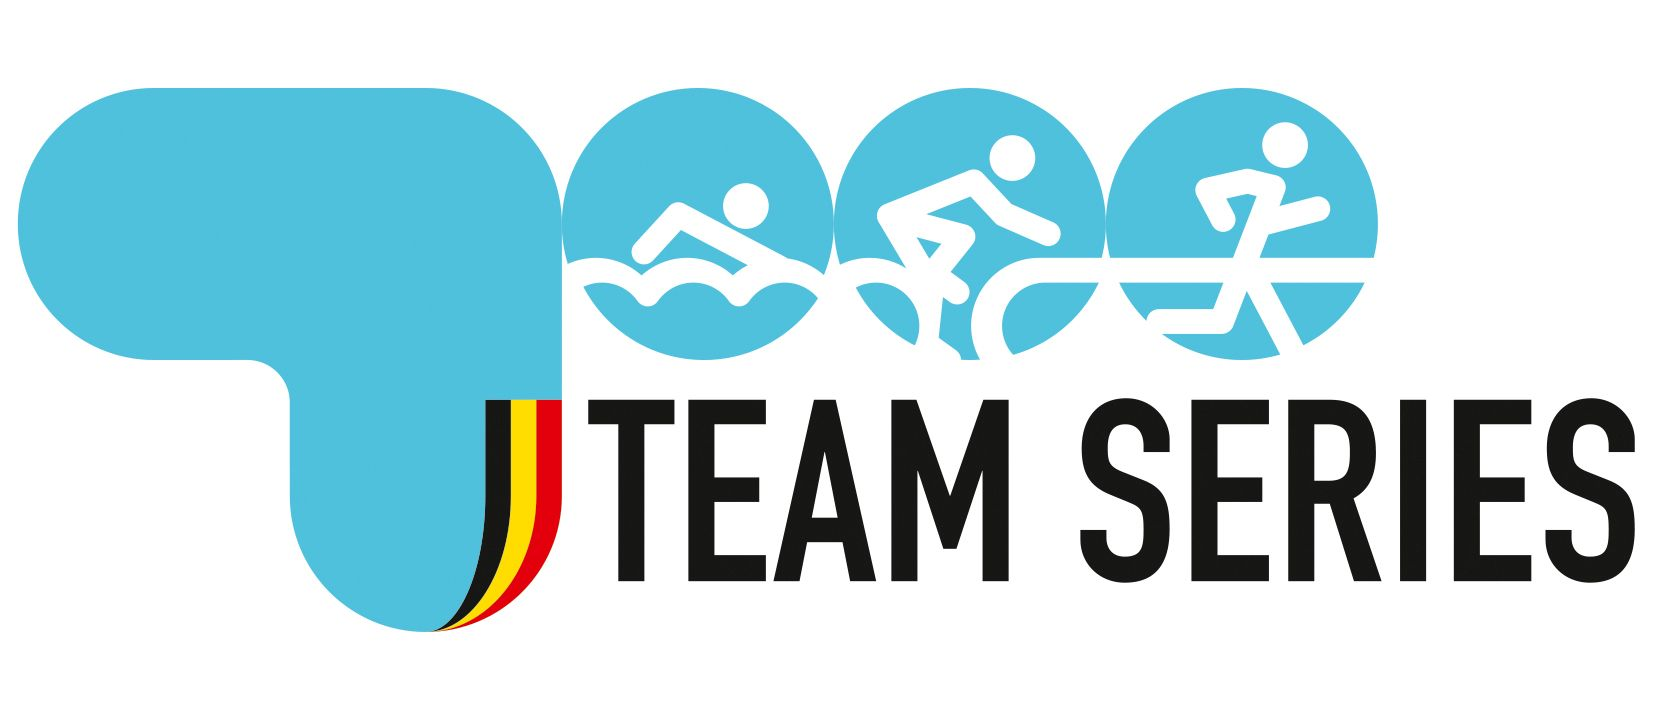 Team Triathlon Series-rgb